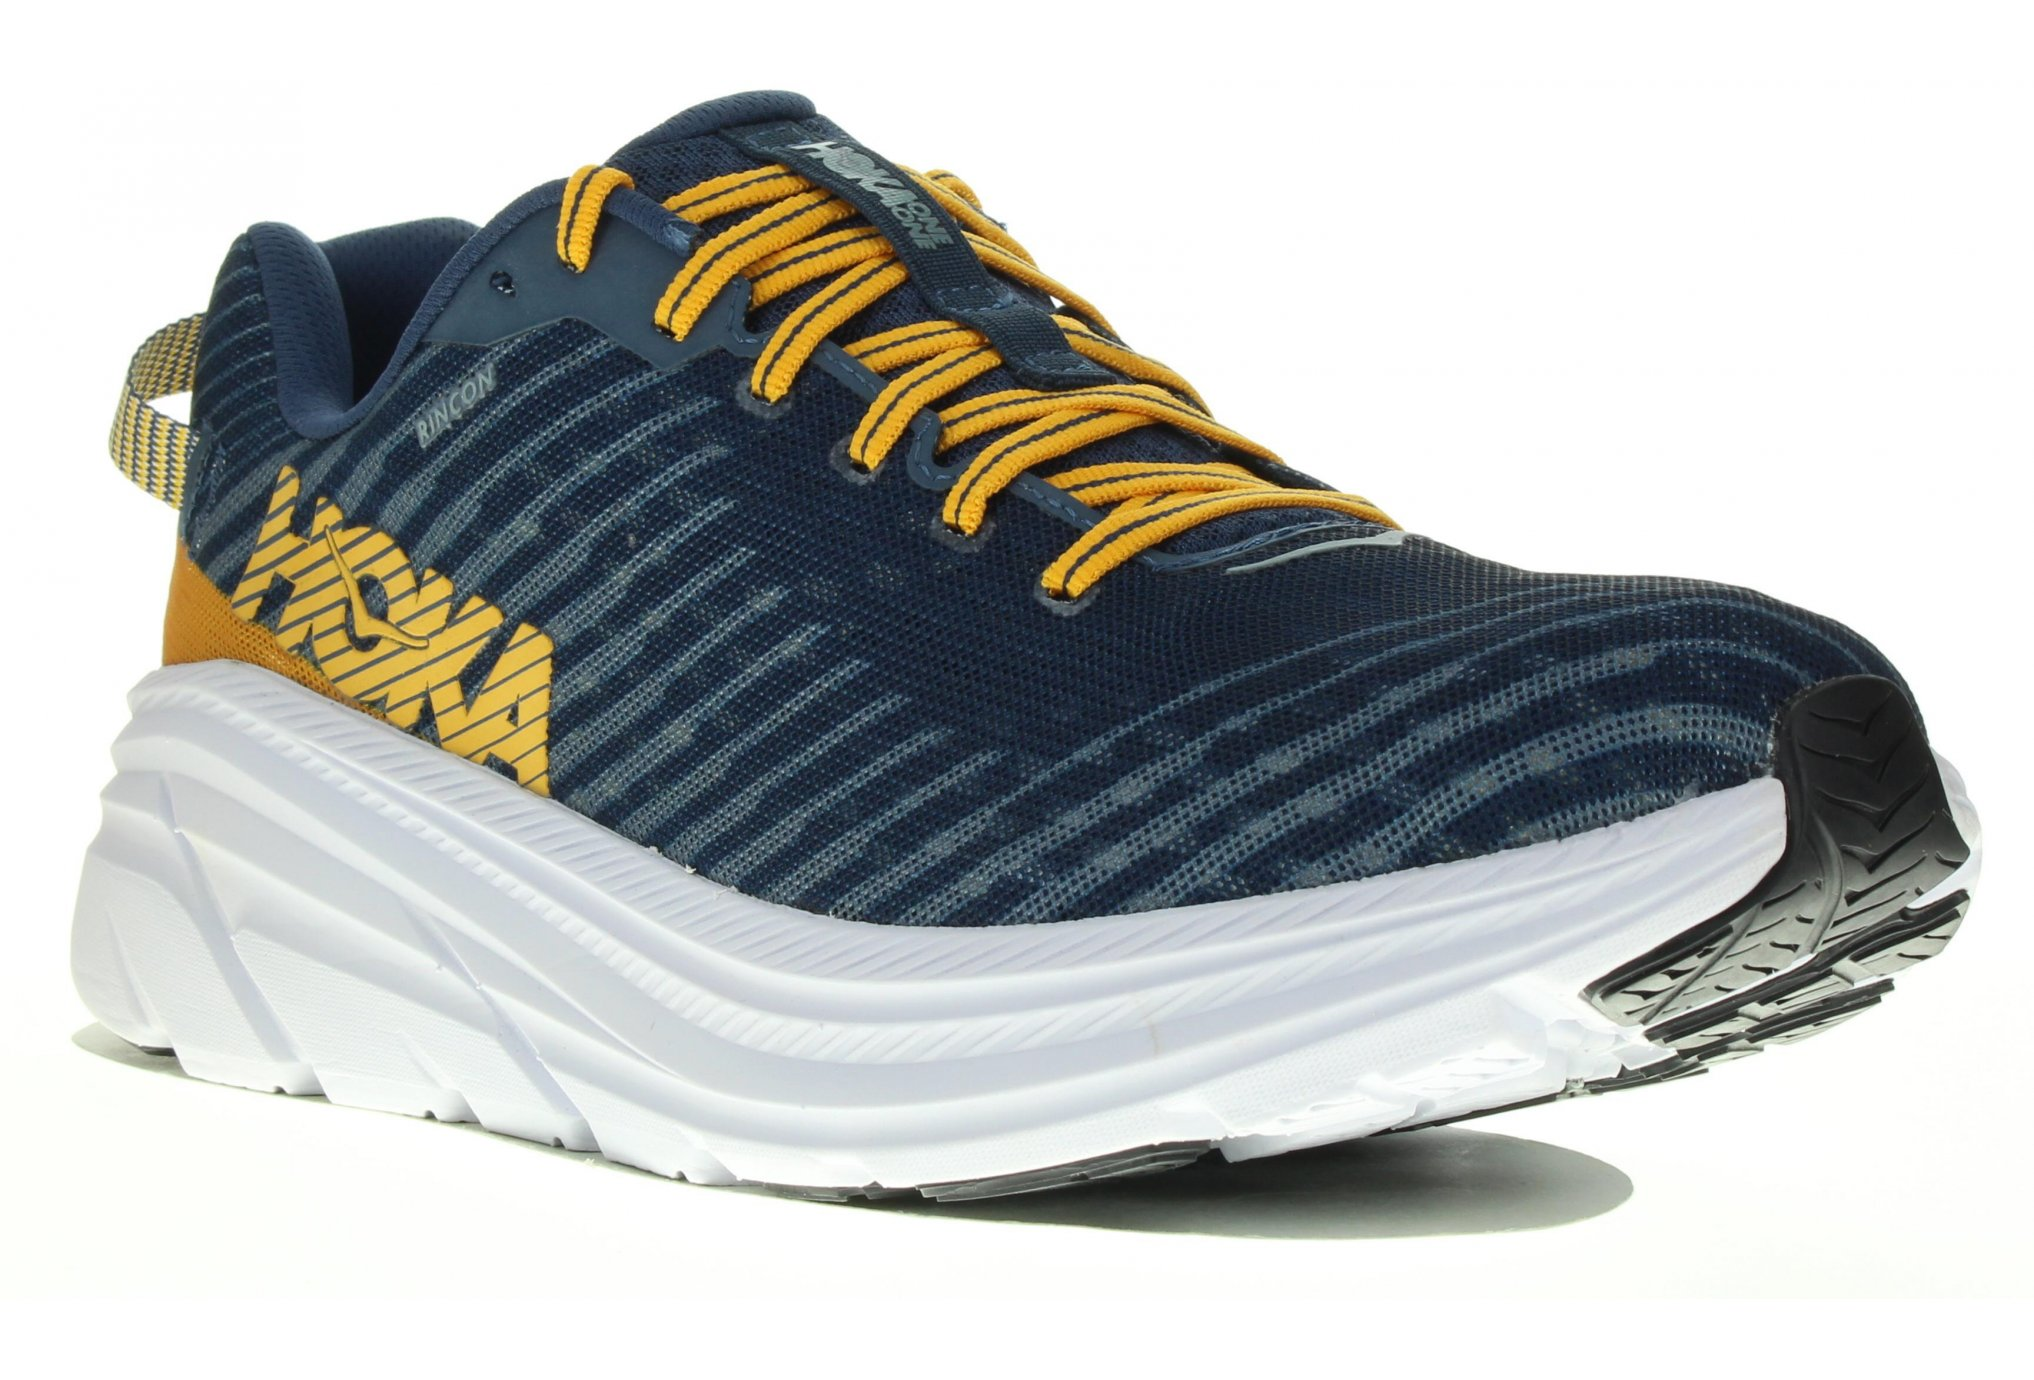 Hoka One One Rincon déstockage running